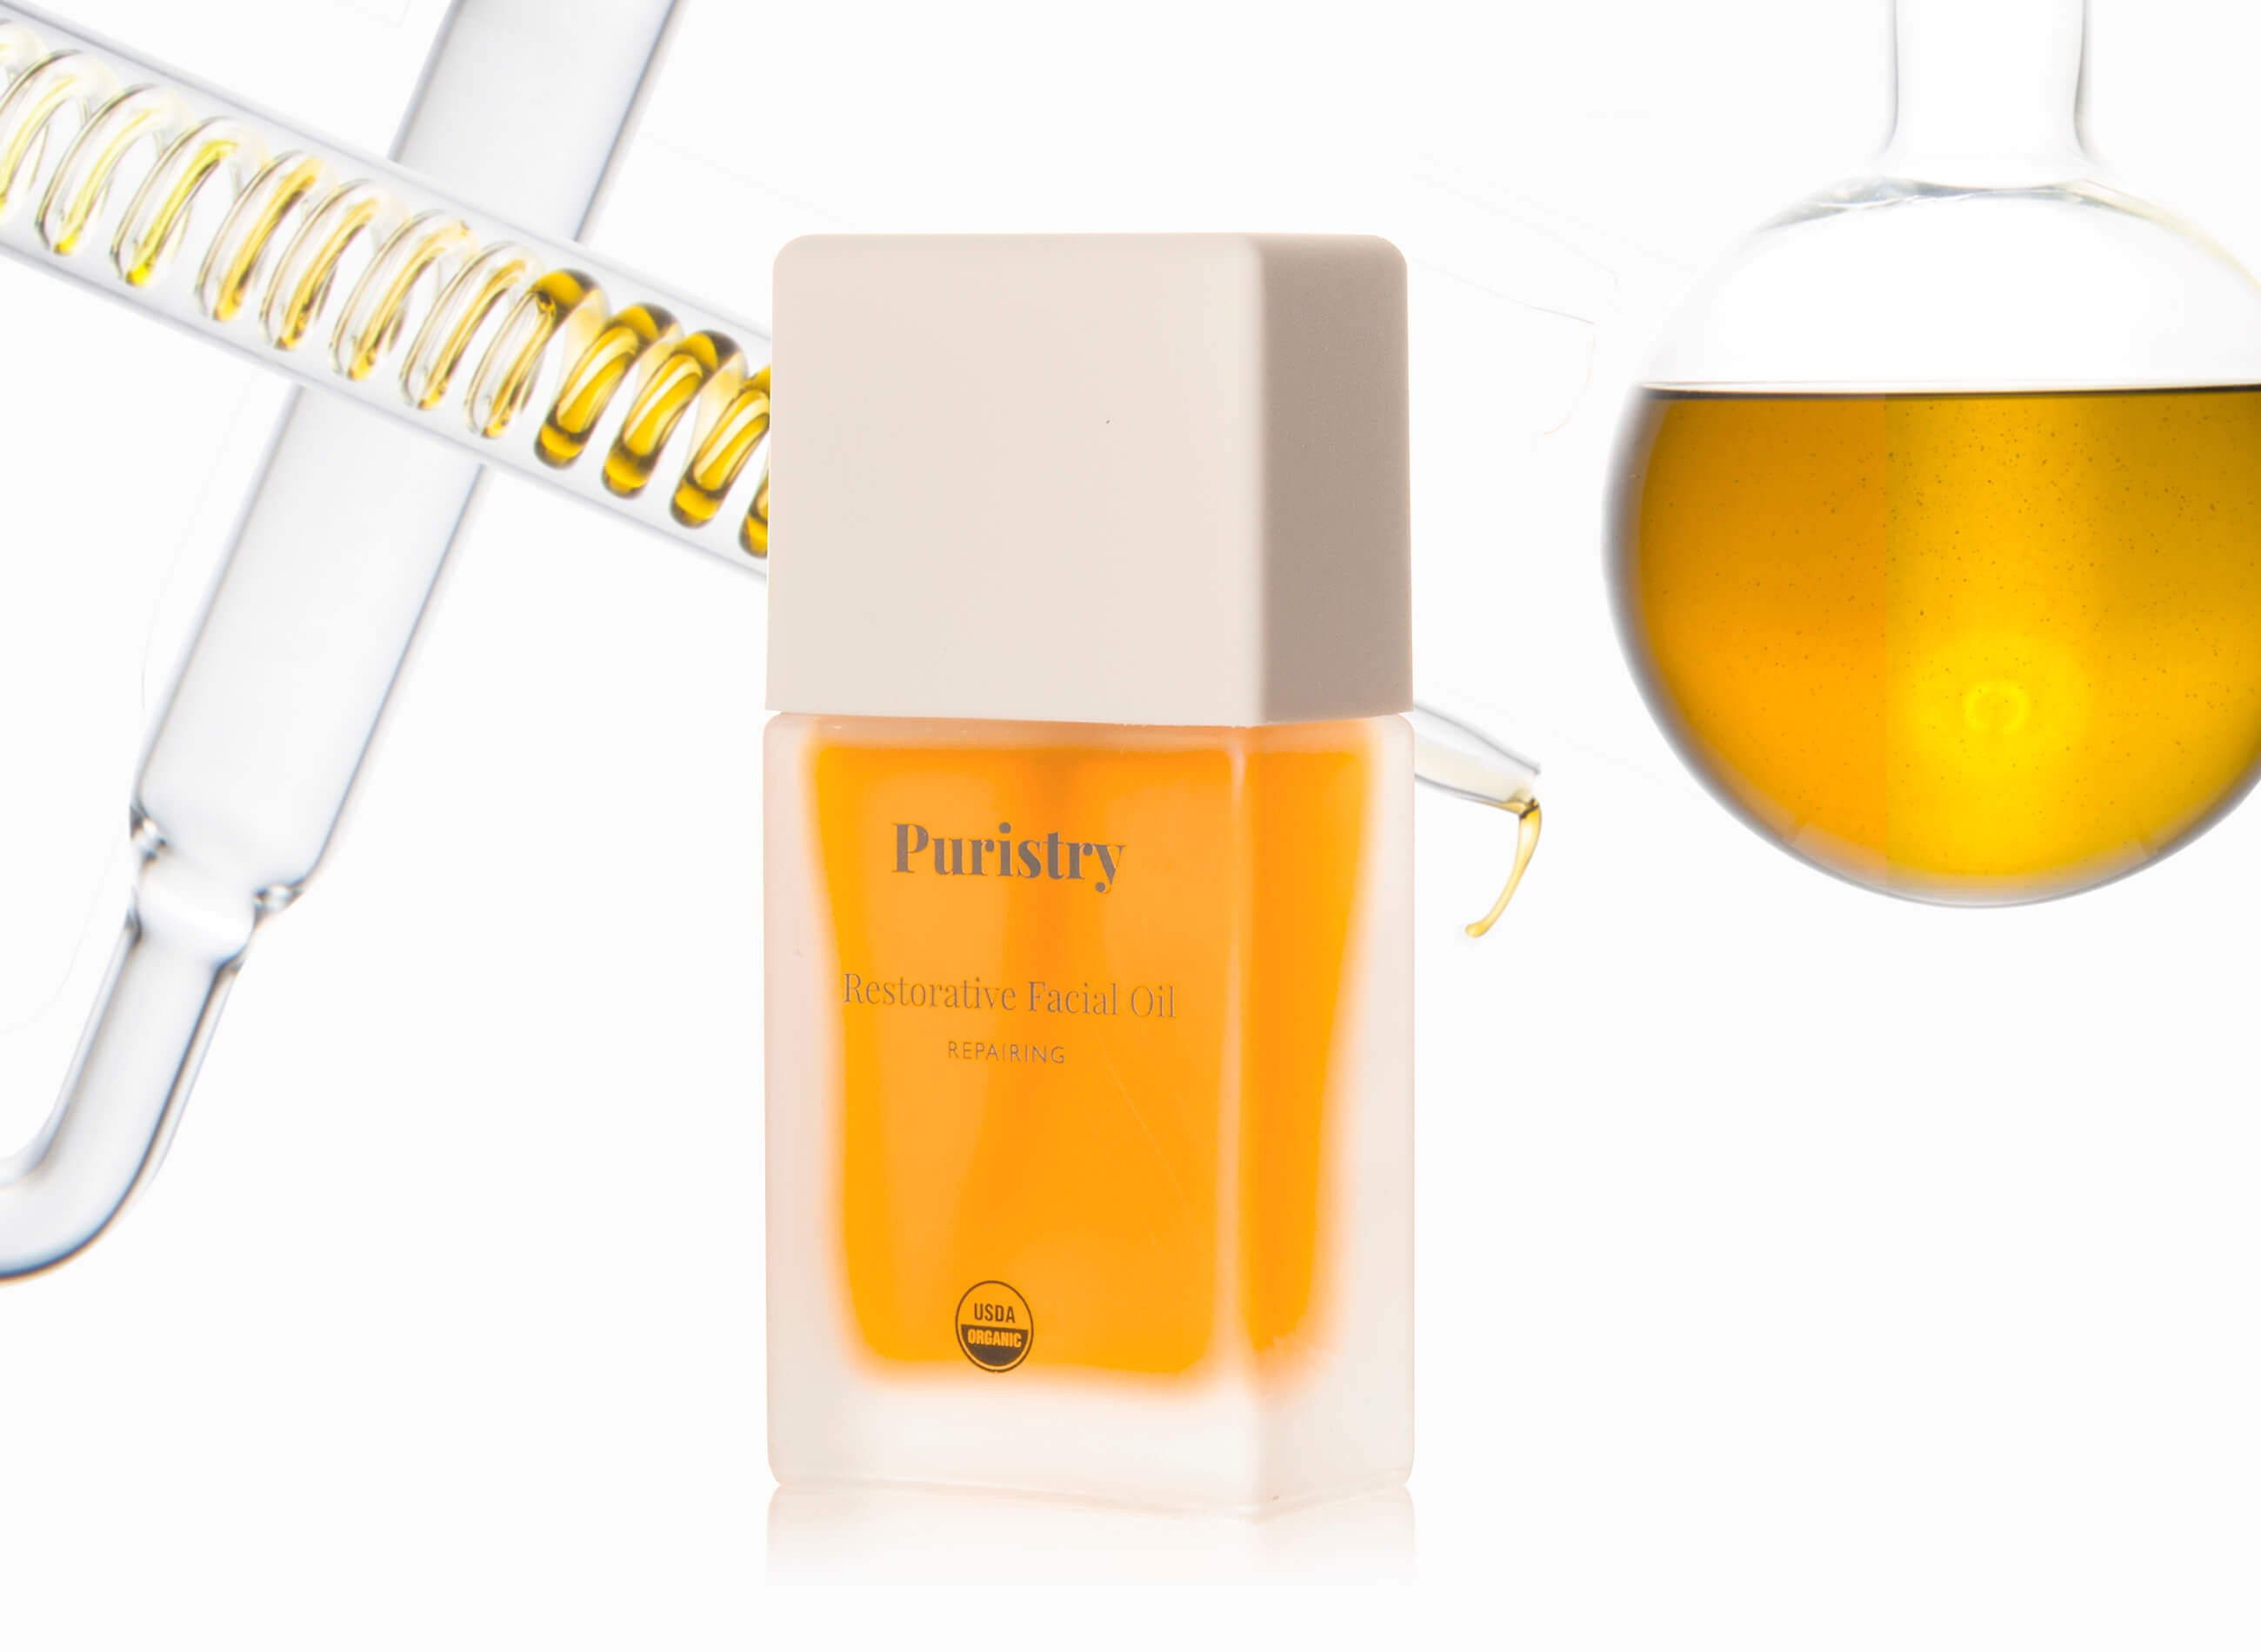 Puristry Product Facial Oil